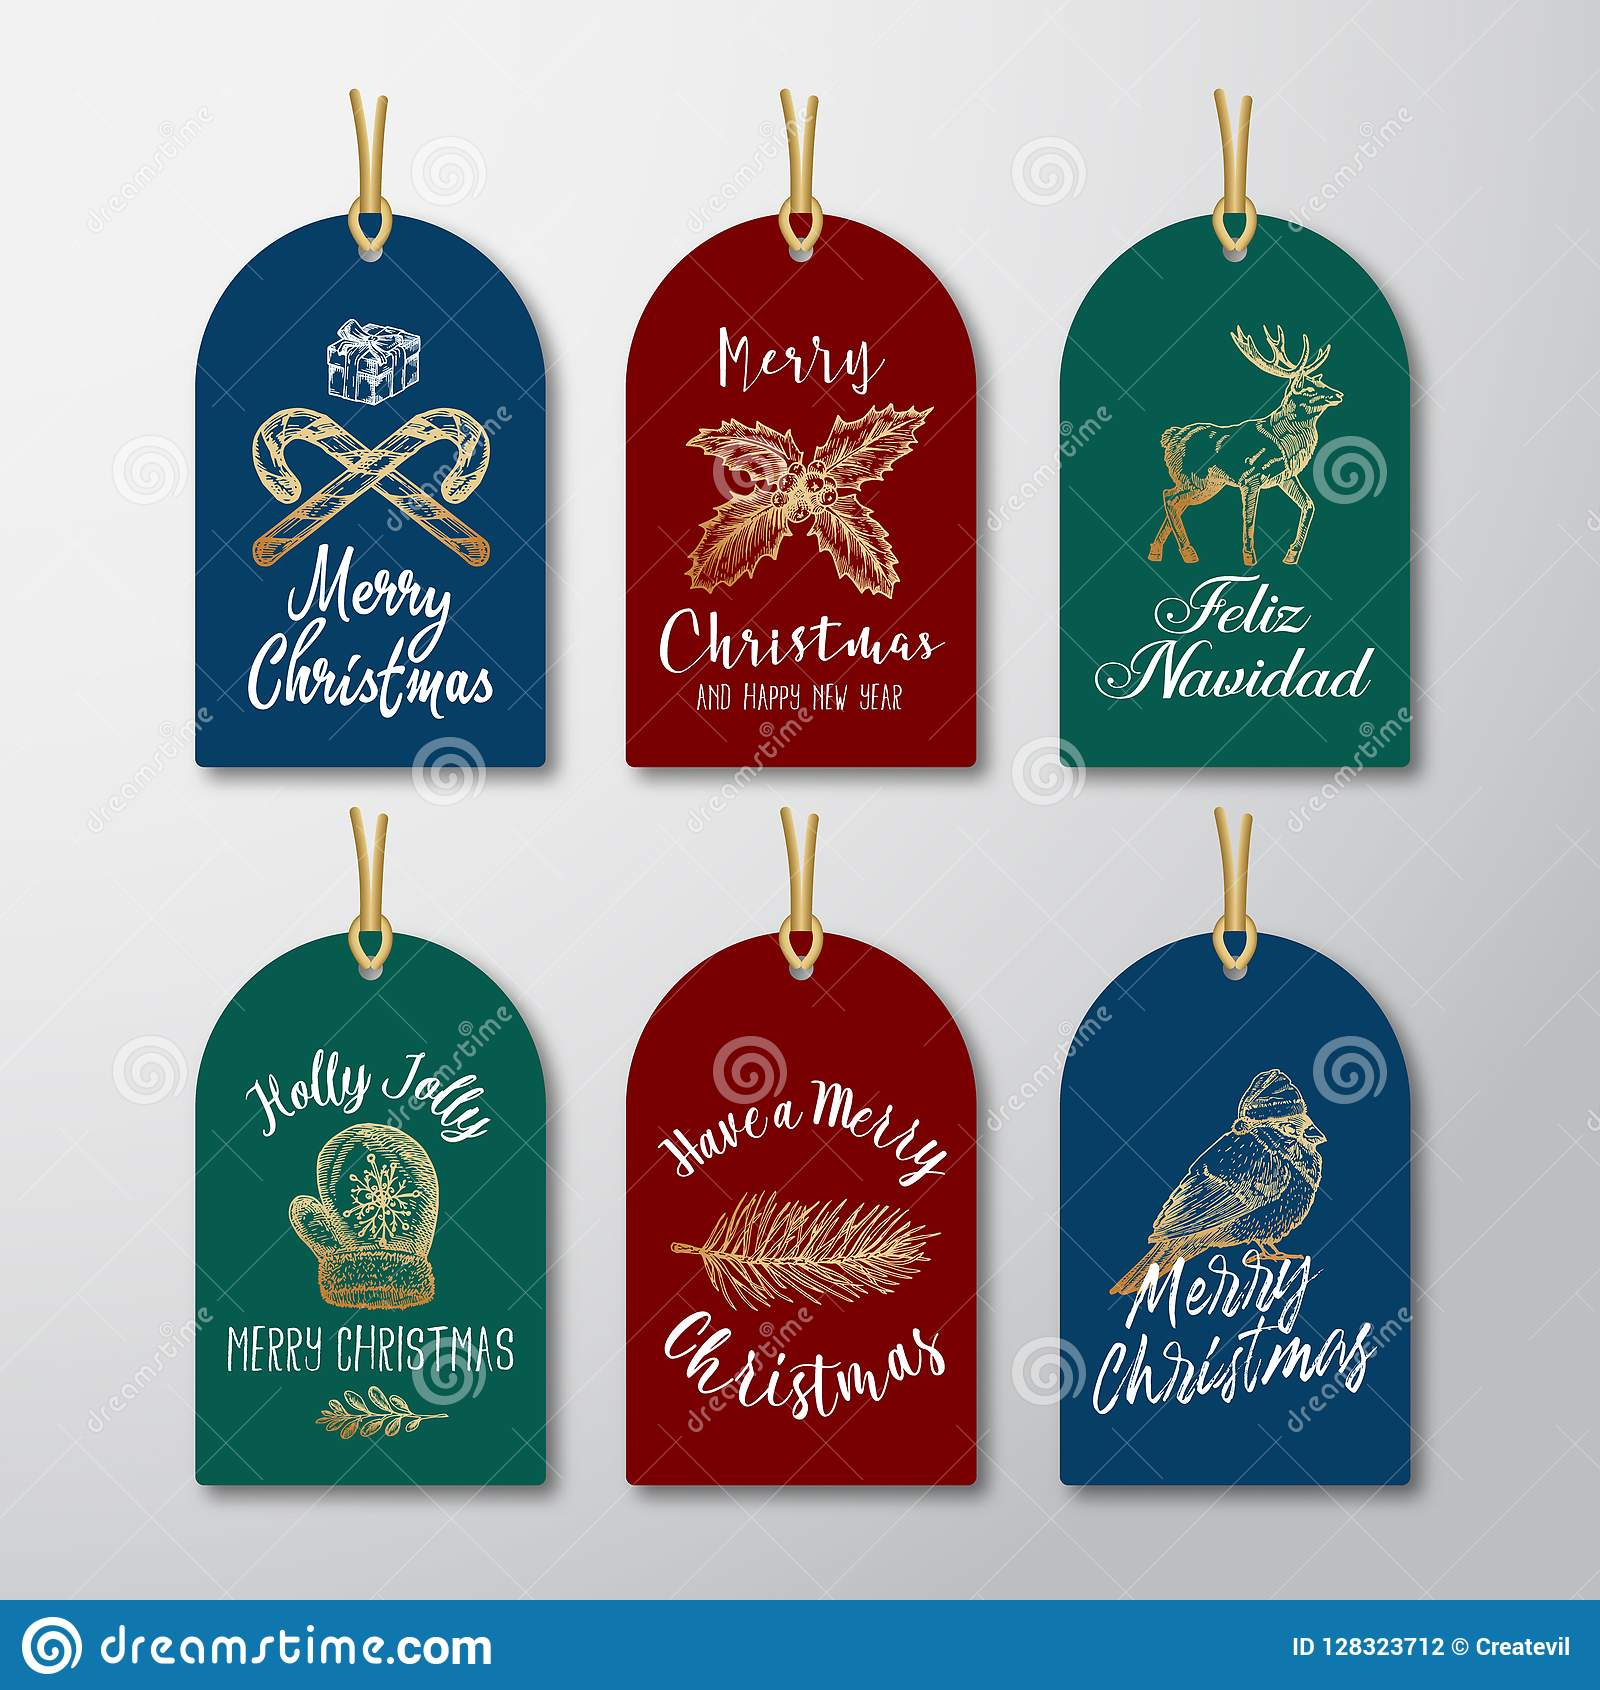 Christmas And New Year Ready To Use Glitter Gift Gift Tags Or Labels